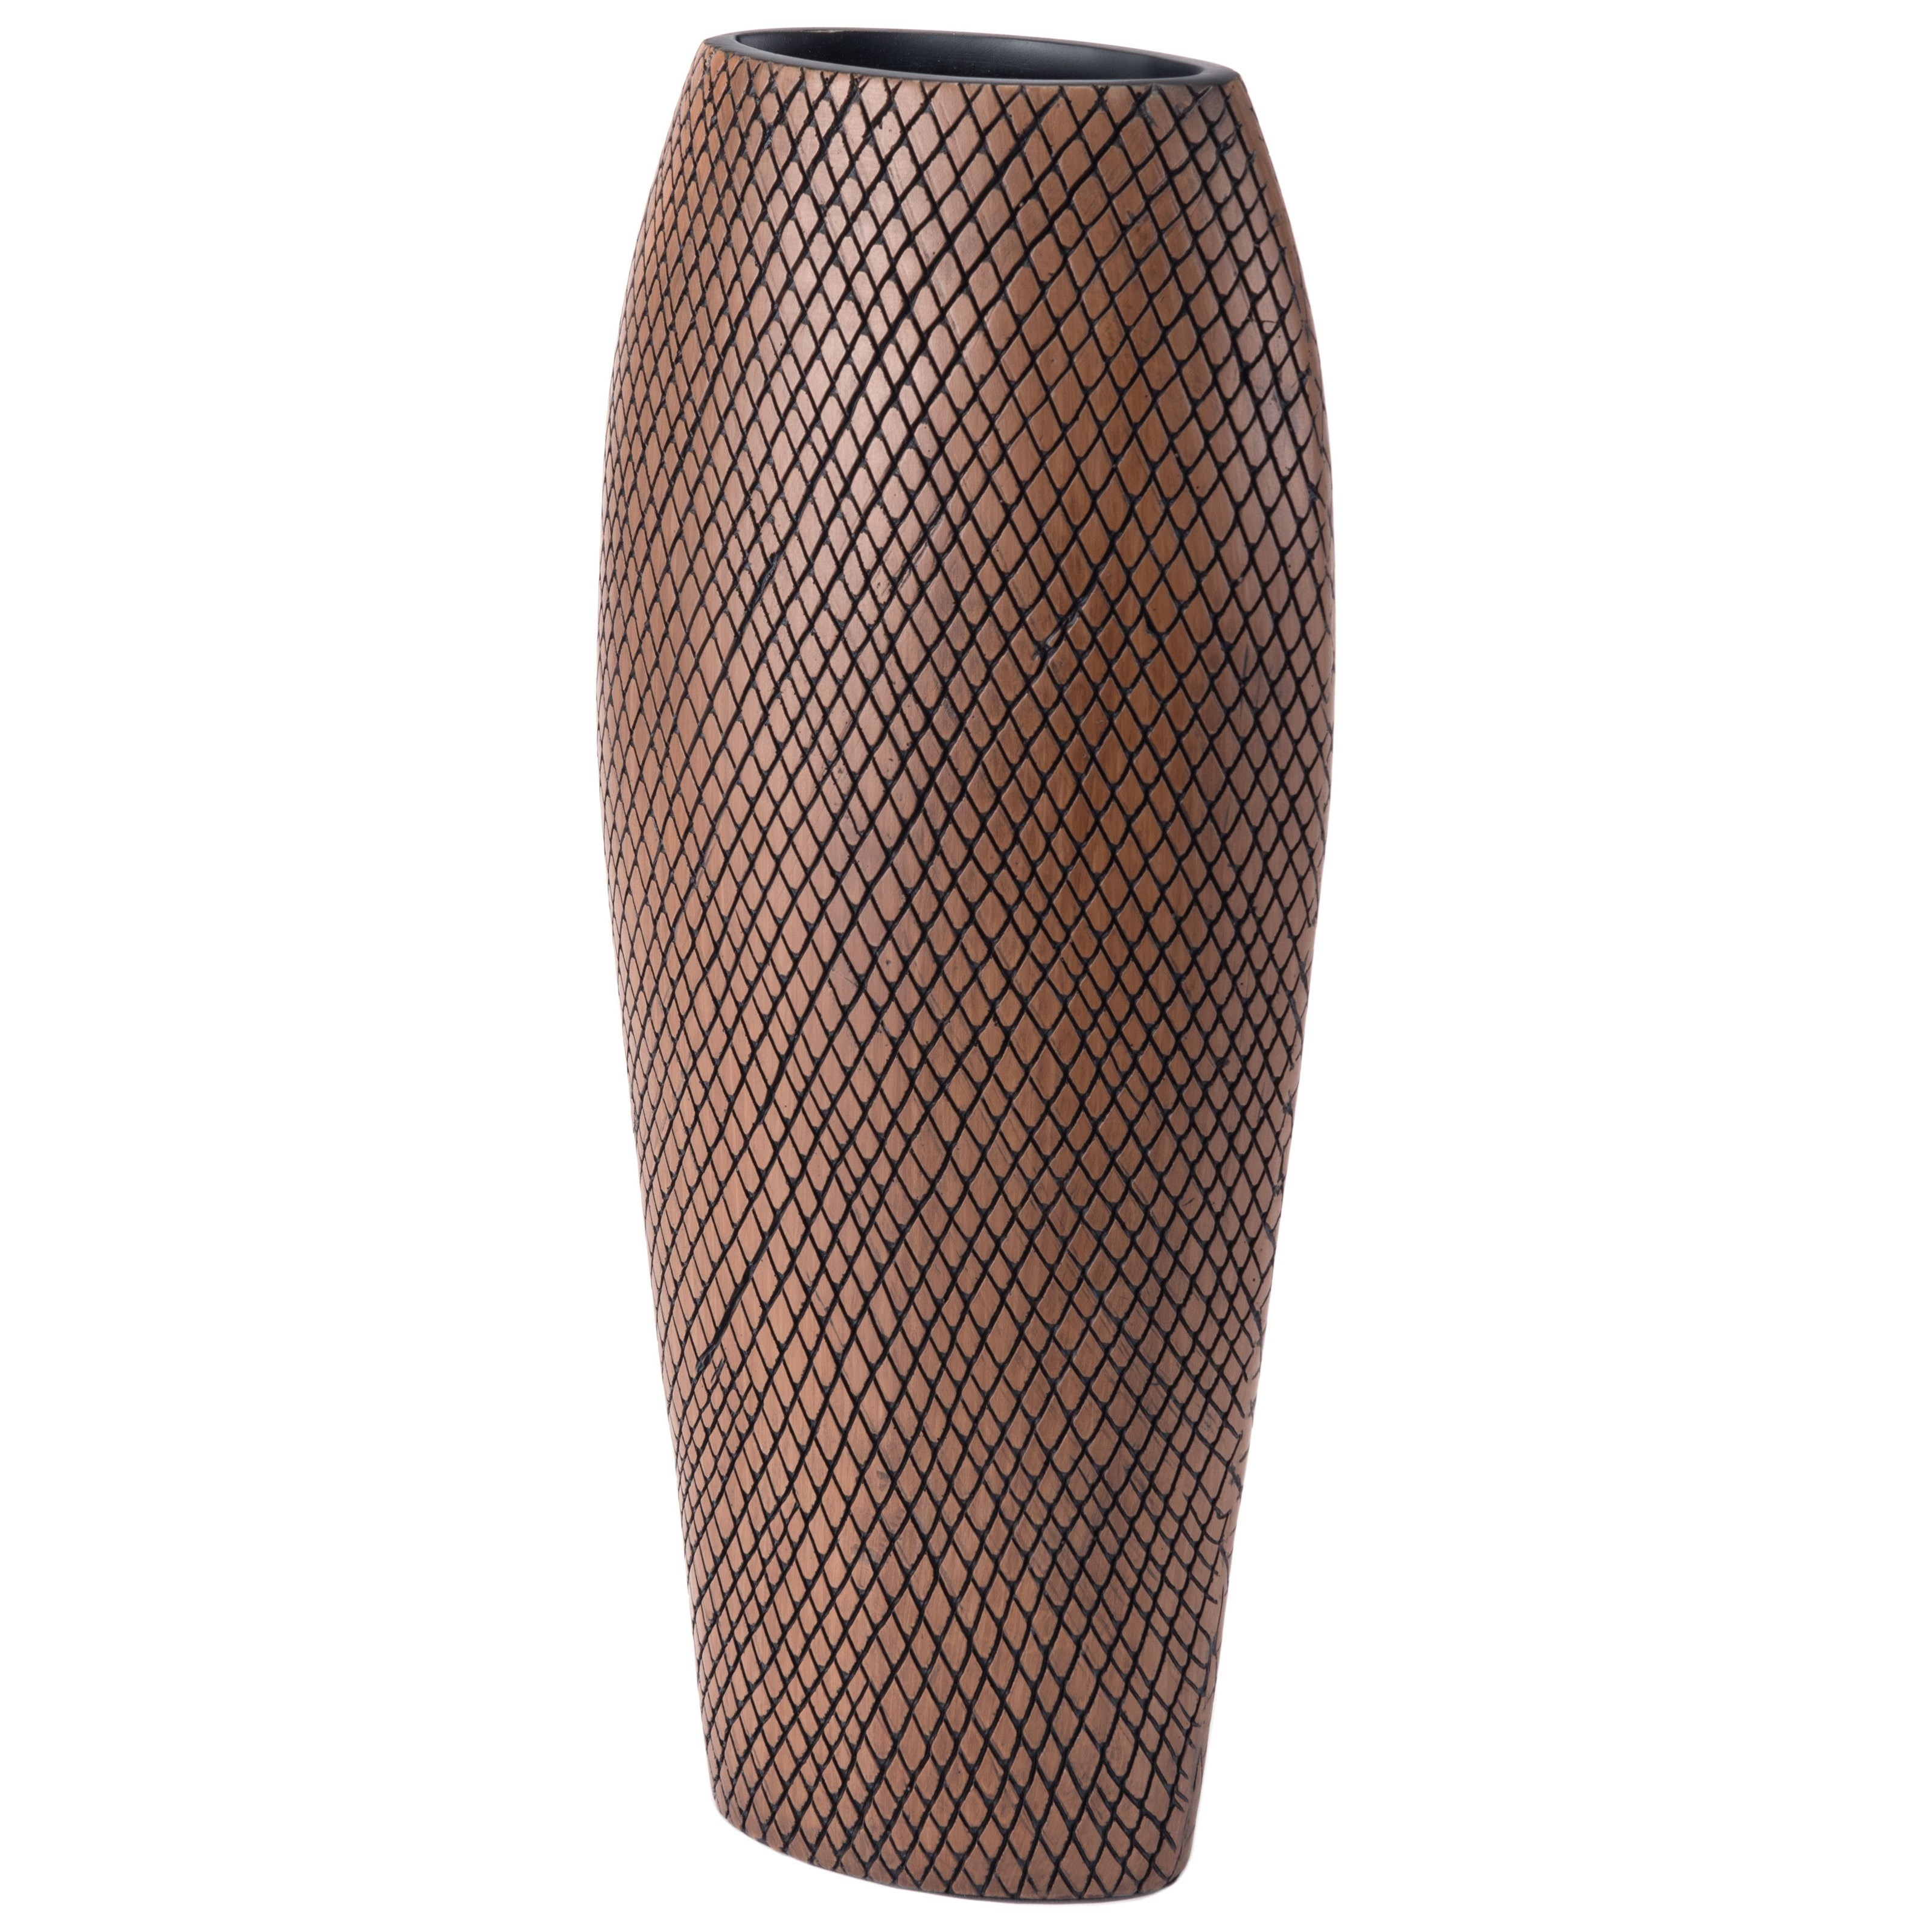 Vases Cuadra Tall Vase by Zuo at Nassau Furniture and Mattress